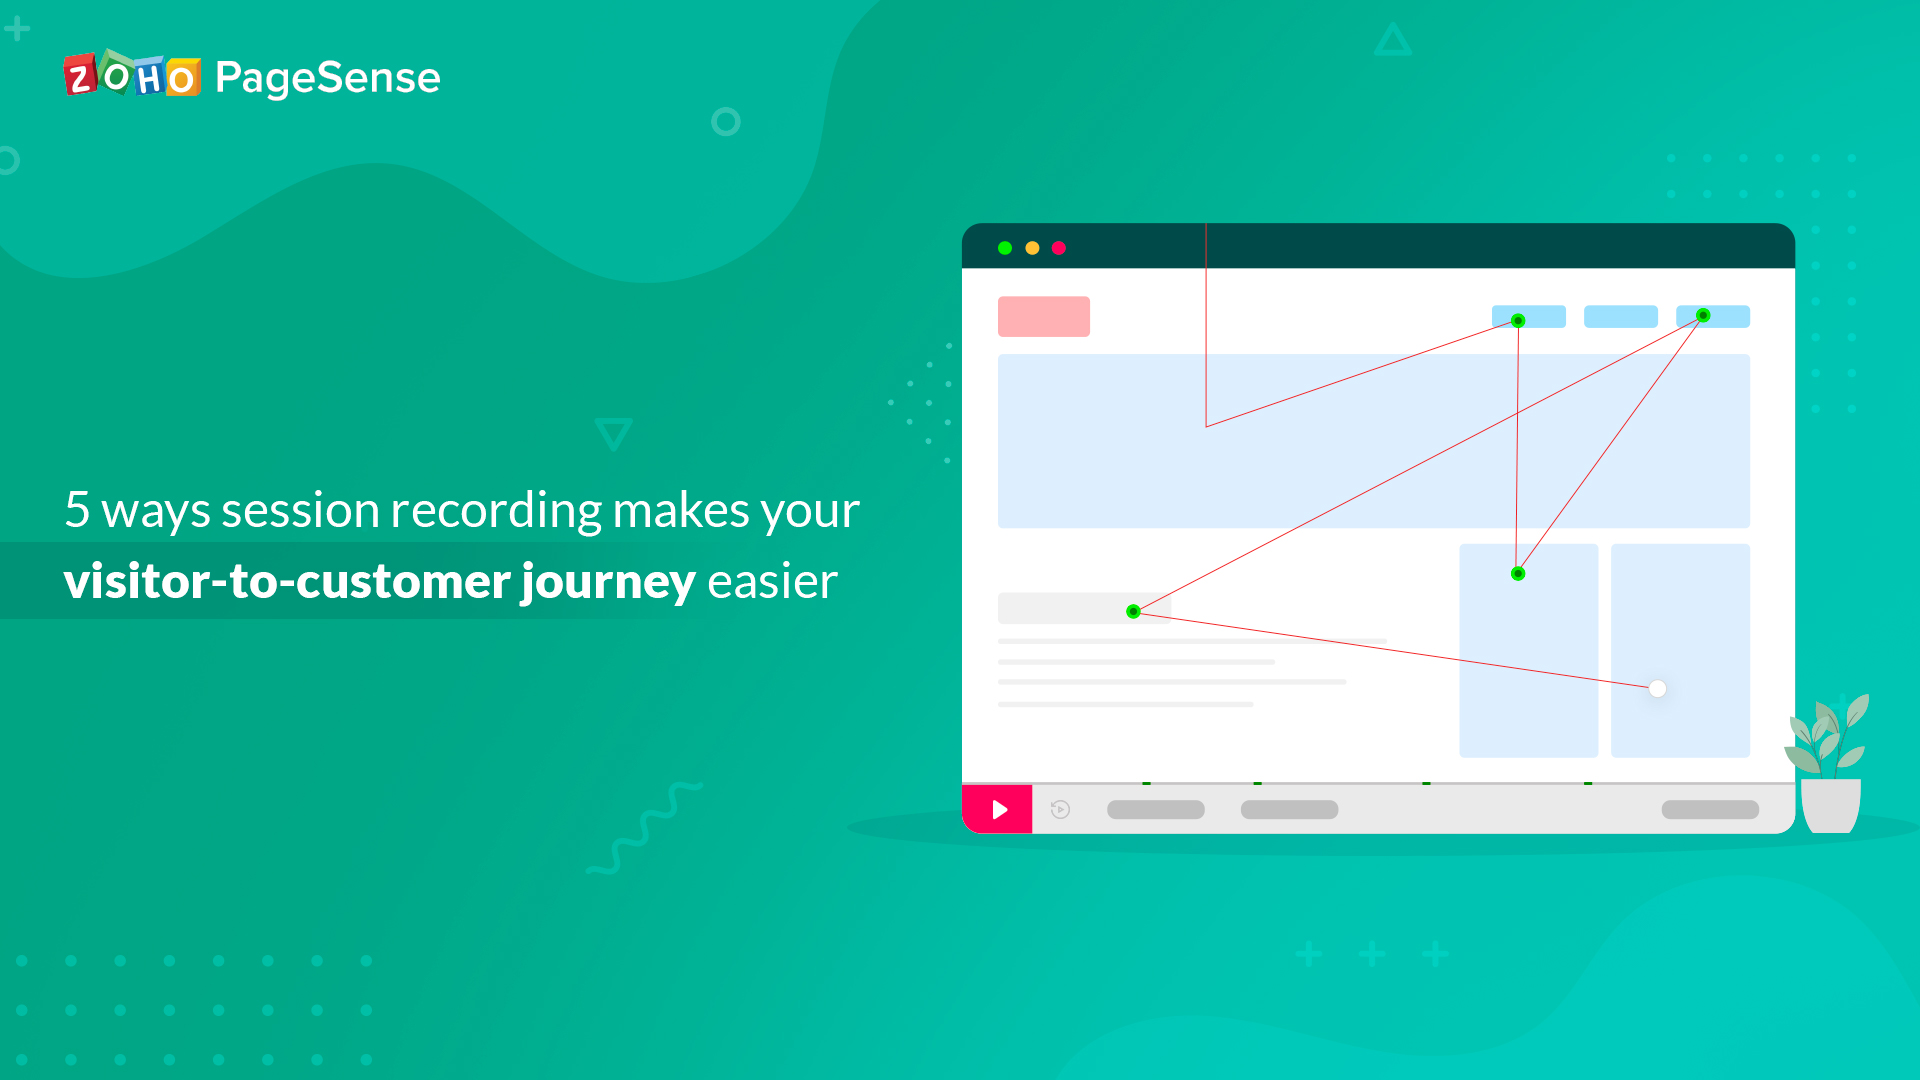 5 ways session recording makes your visitor-to-customer journey easier